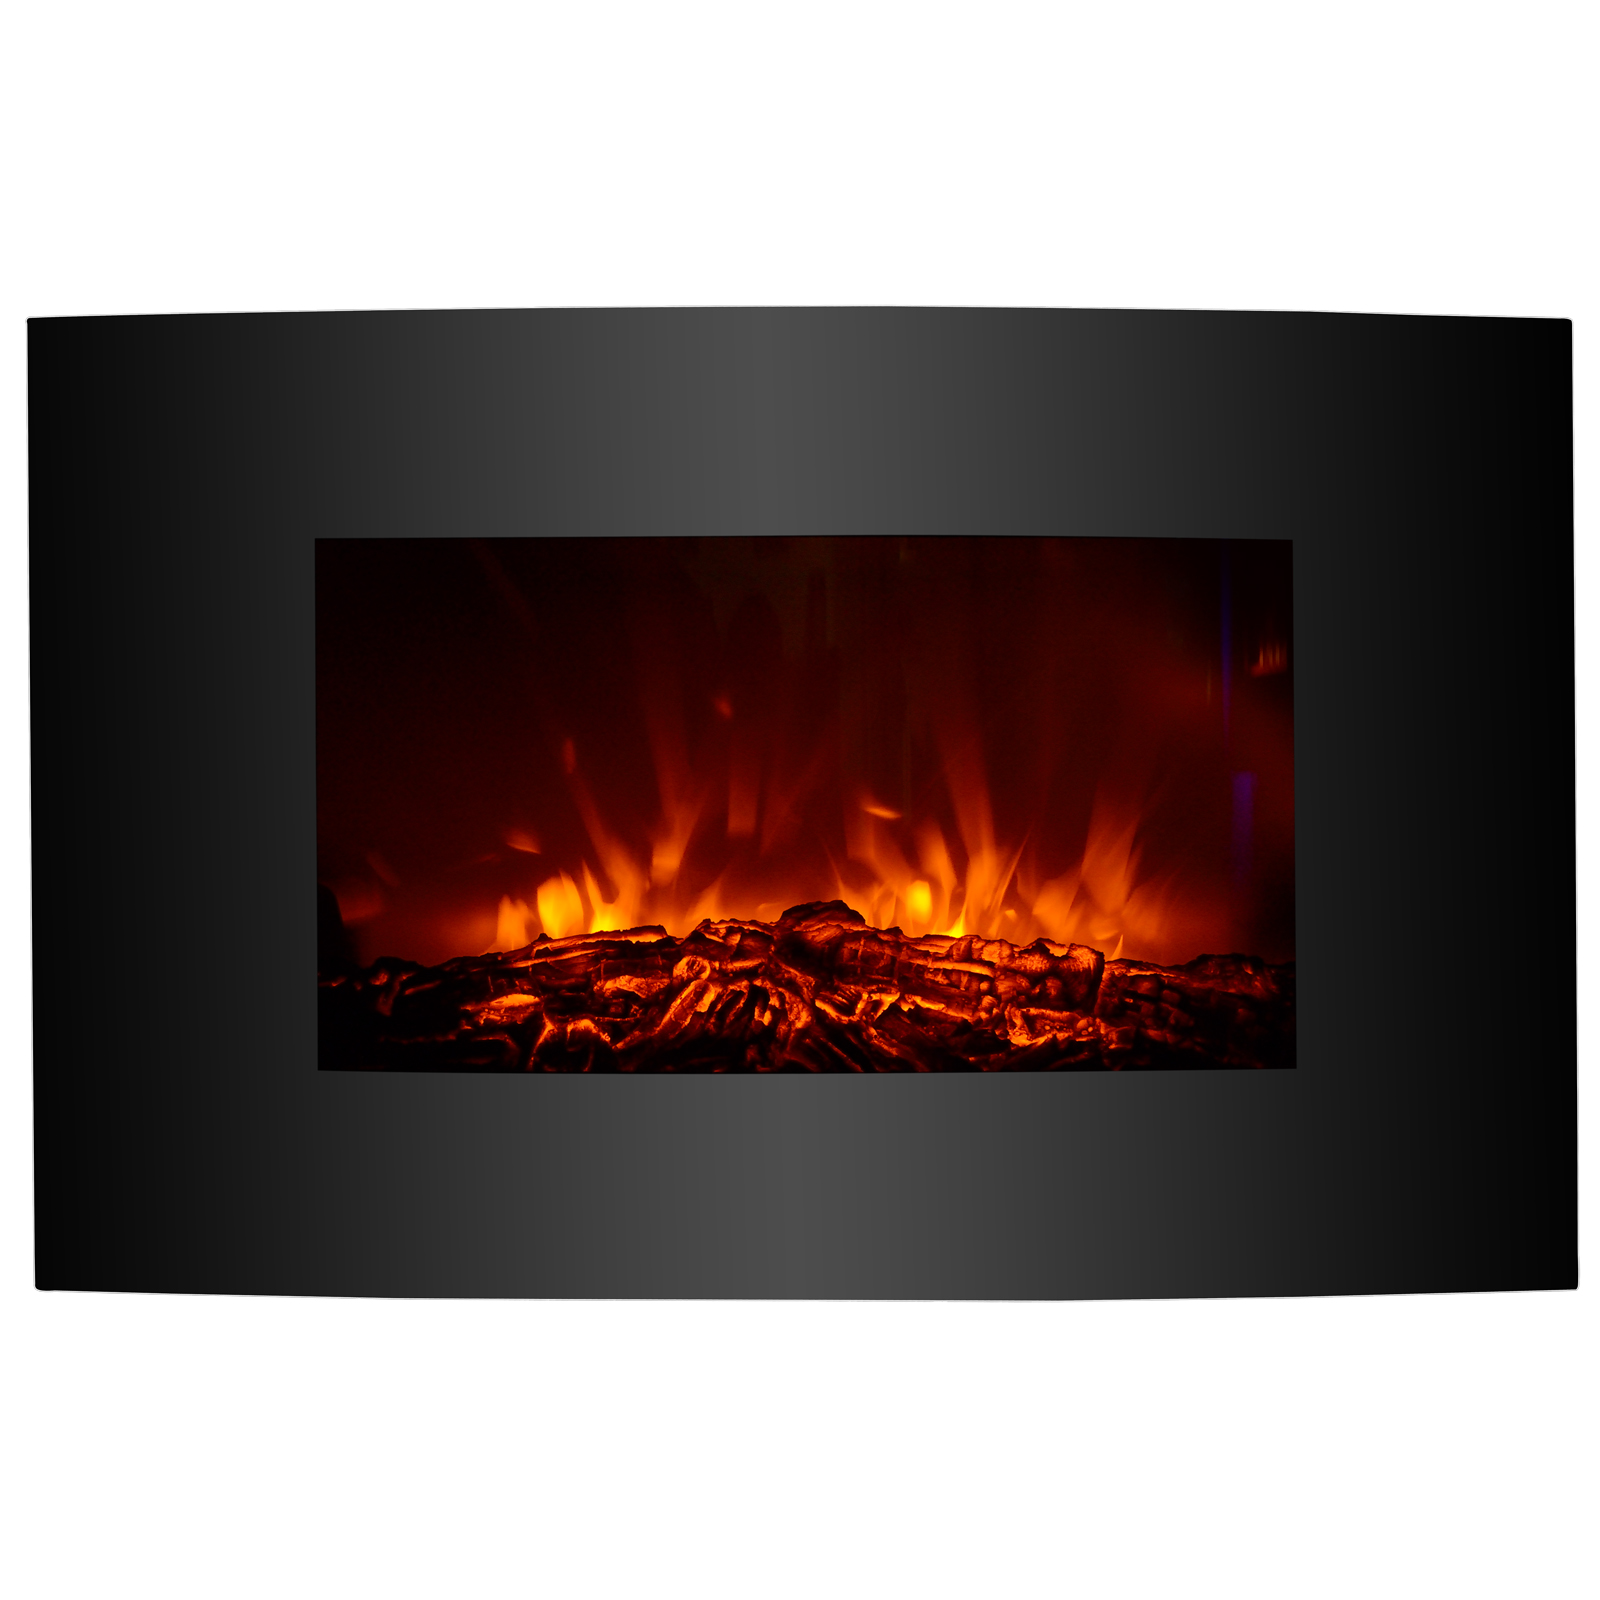 "35""x22"" XL Large 1500W Electric Fireplace Wall Mount Heater w  Remote Adjustable by Uenjoy"